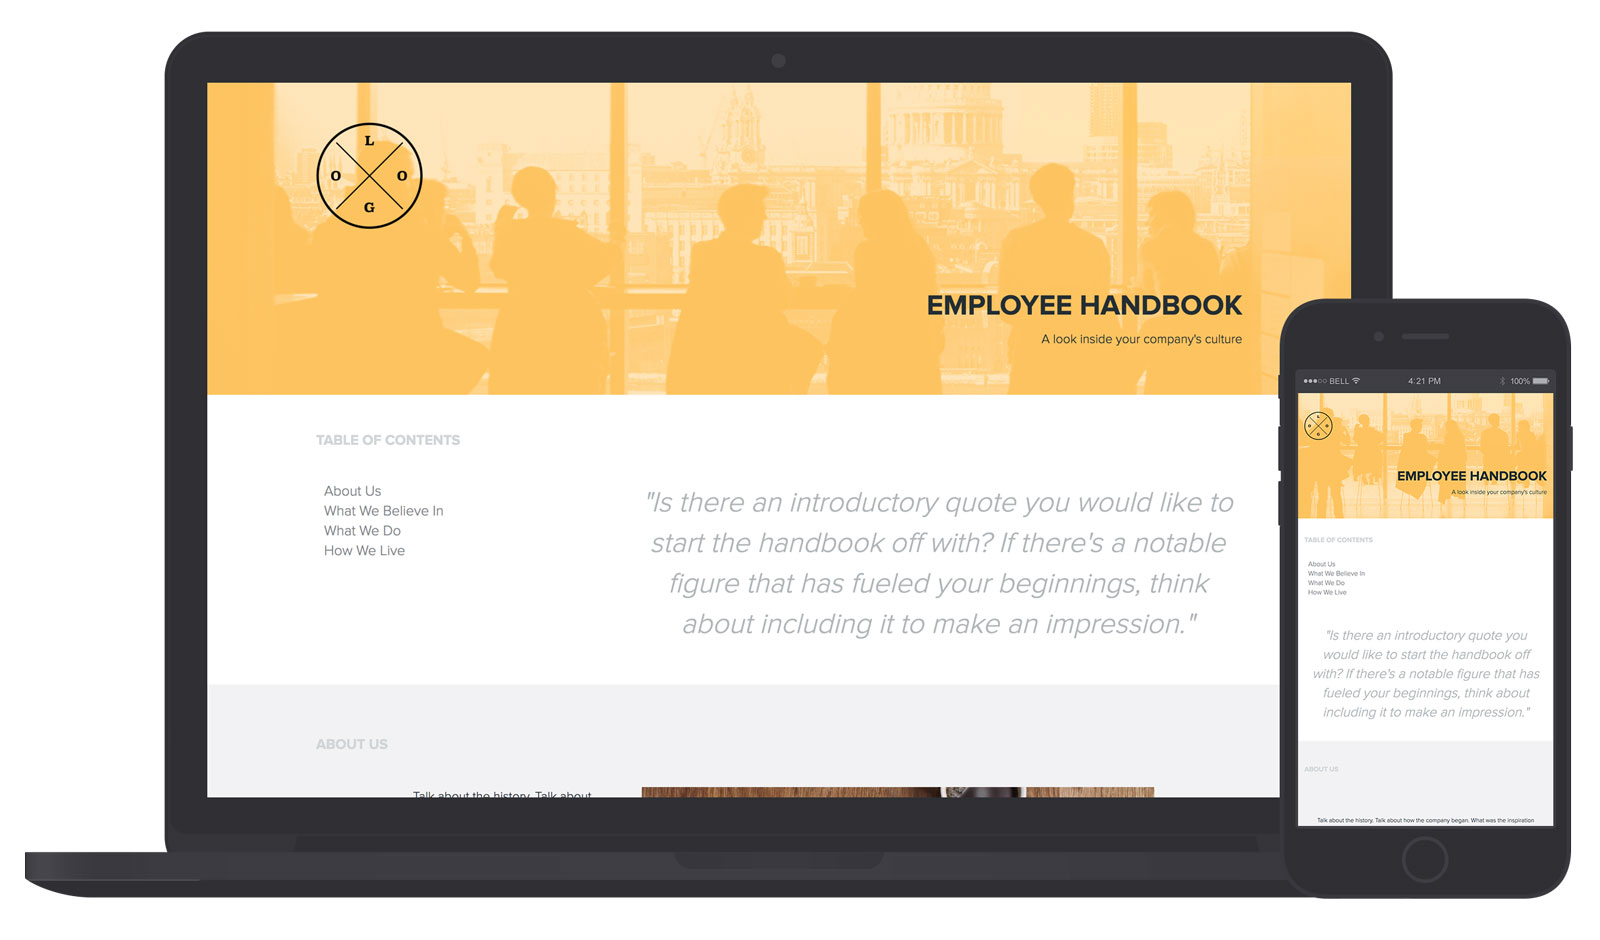 employee handbook cover design template - employee handbook design pictures to pin on pinterest